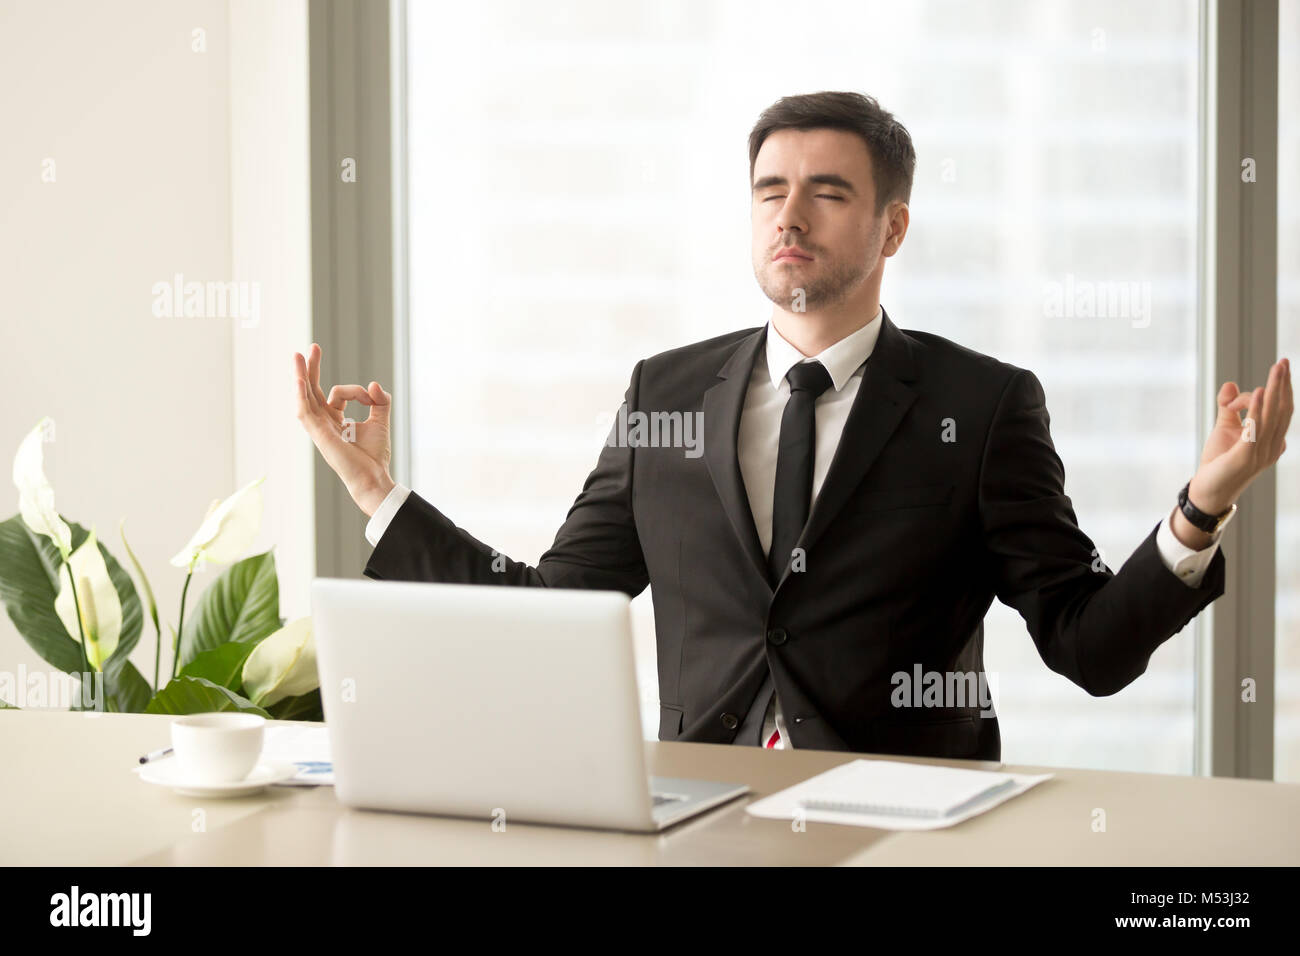 Company leader trying to find calmness at work - Stock Image